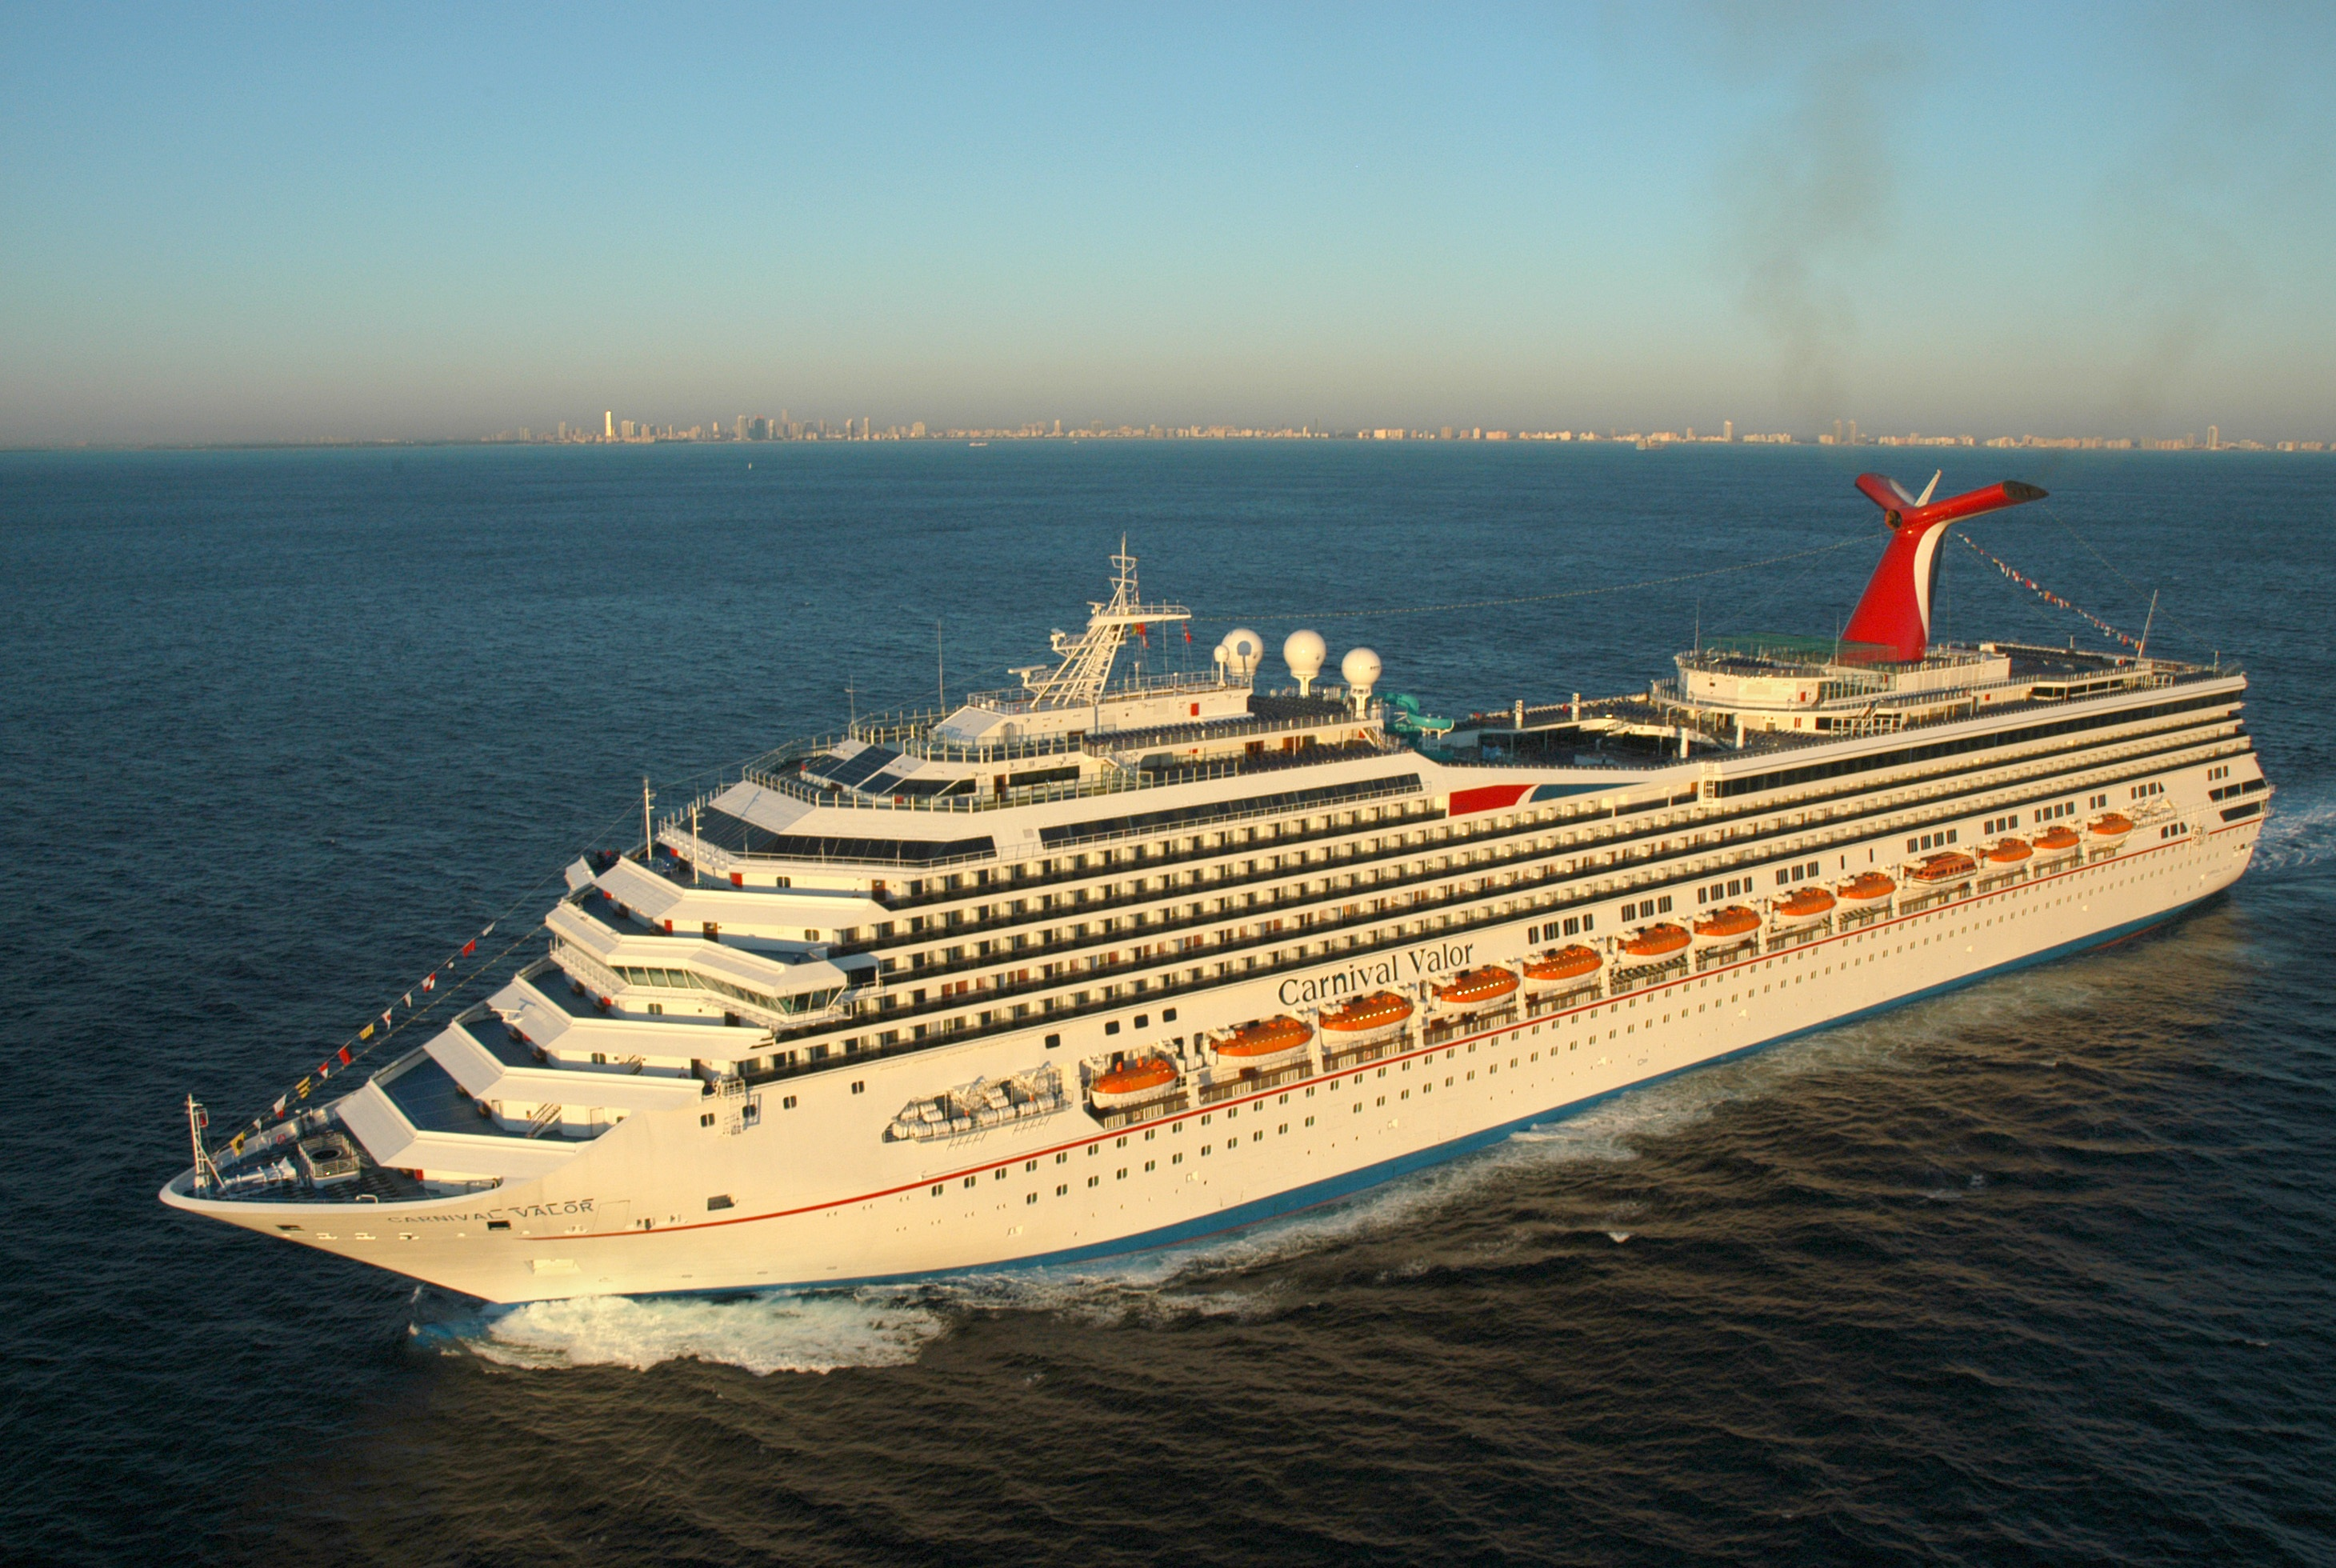 Carnival Valor Cruiseline Ship